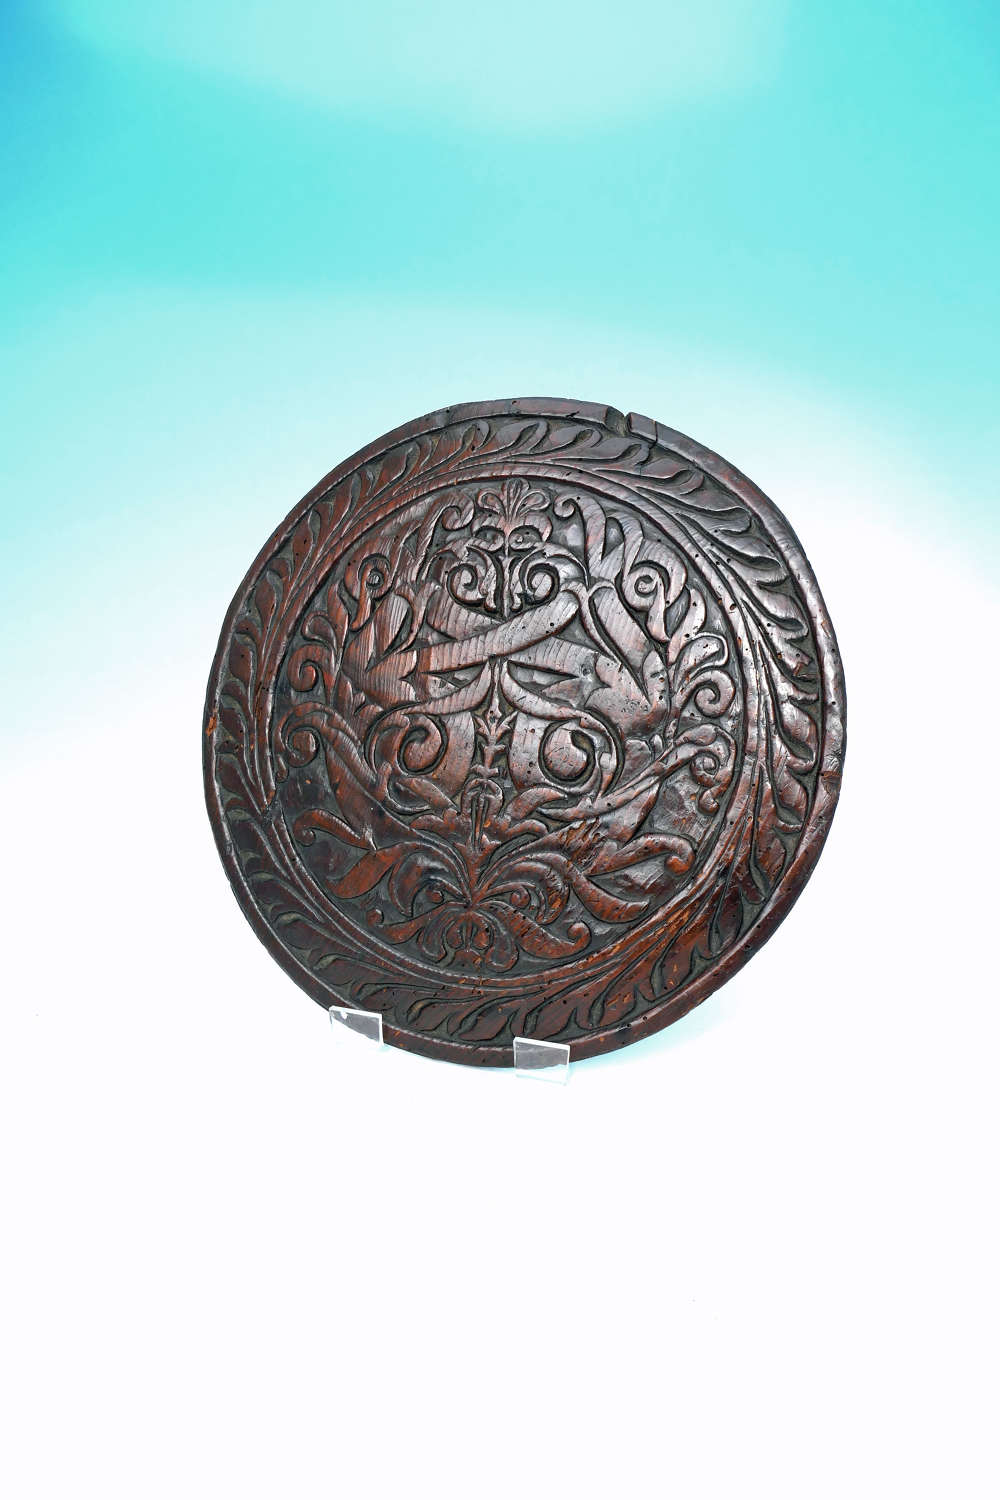 Antique Carved 17thc Pine Roundel Decorated With A Floral Pattern.